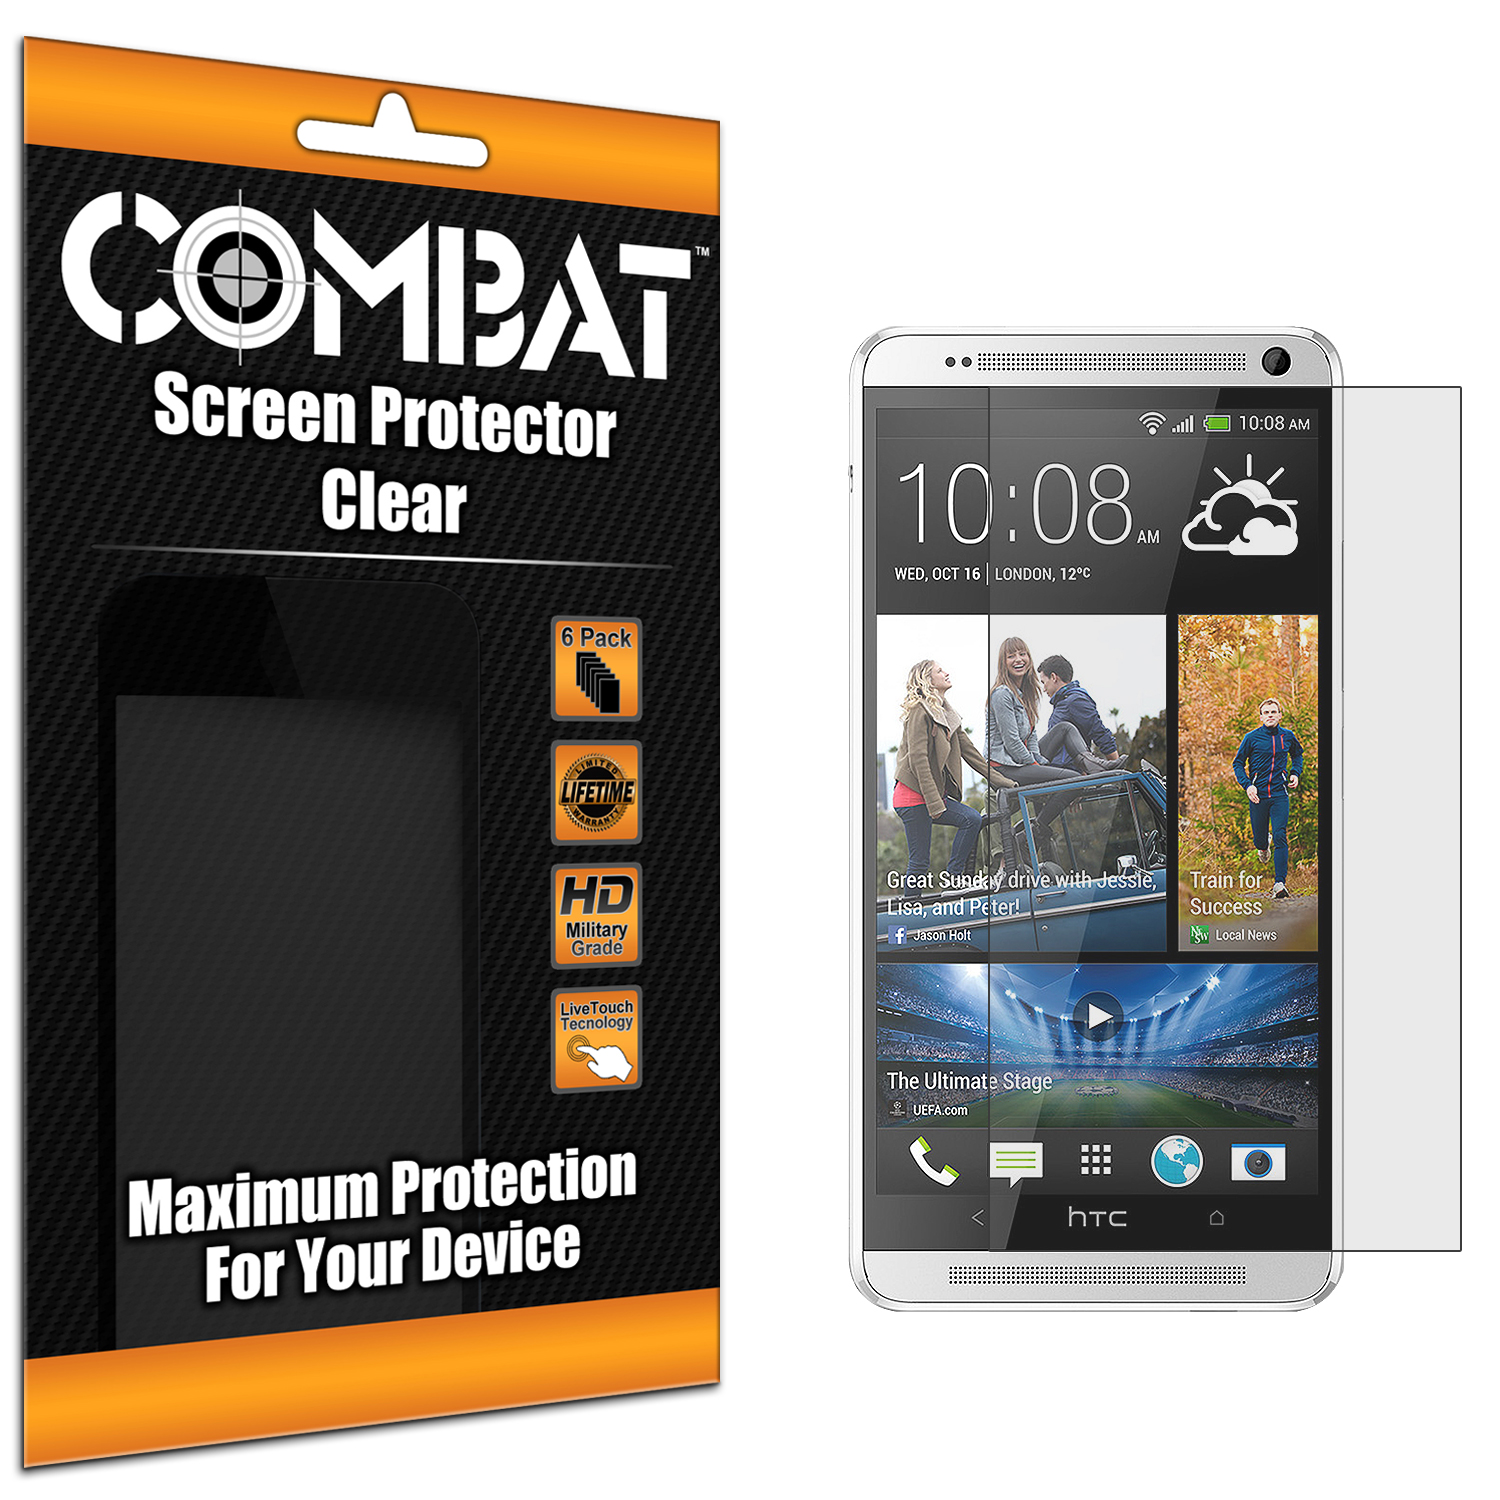 HTC One Max Combat 6 Pack Anti-Glare Matte Screen Protector